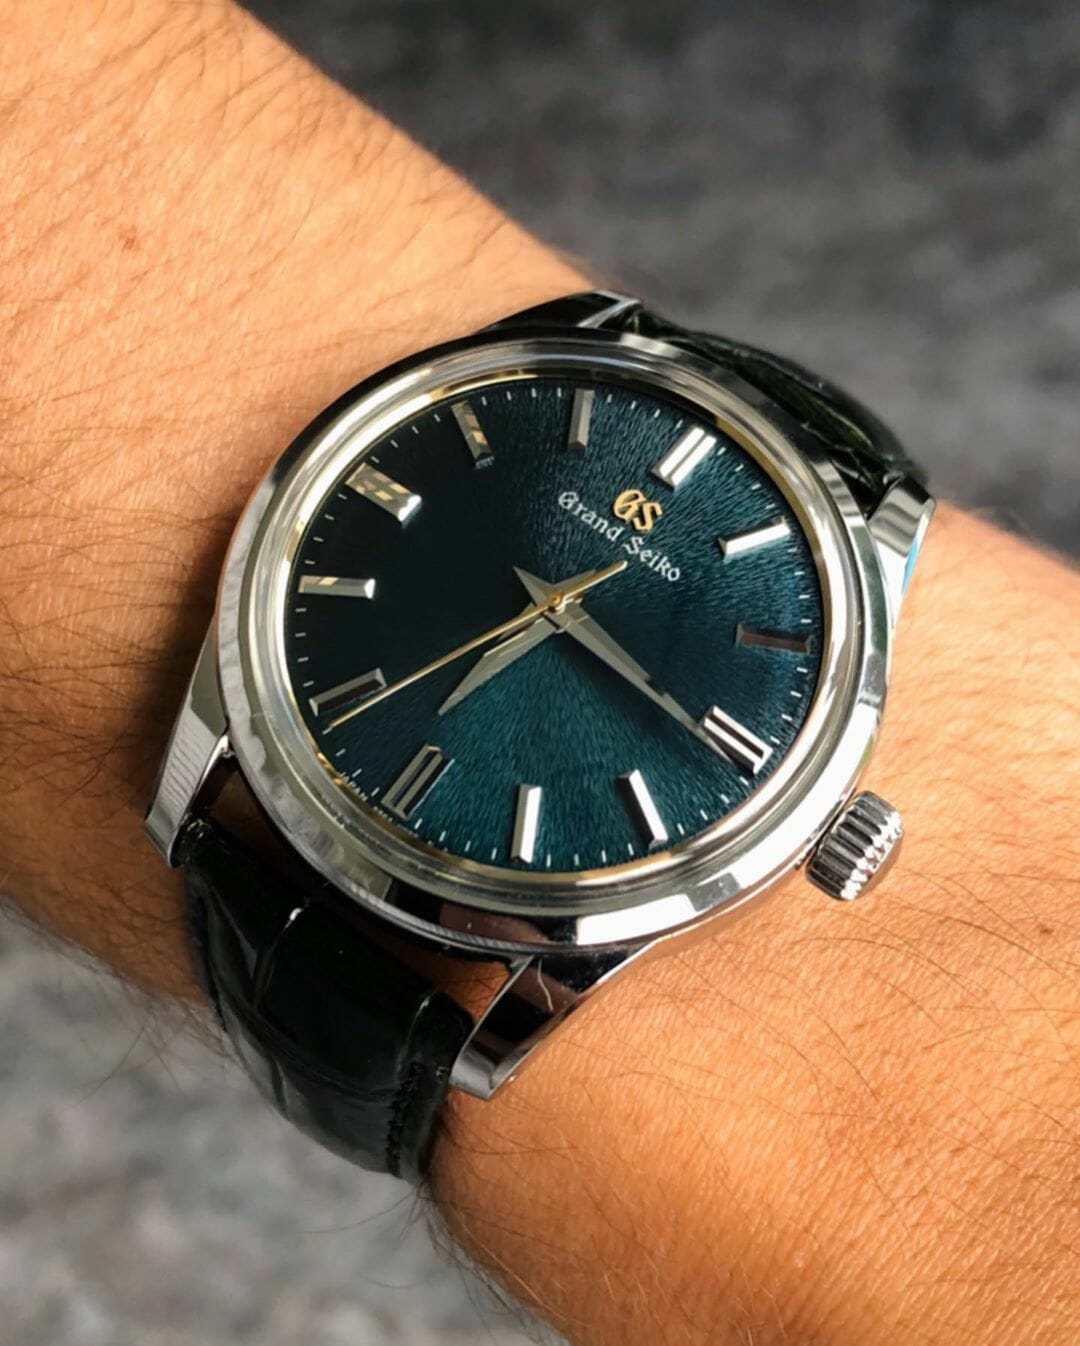 9 Grand Seiko SBGW255 Tongsa With Jadeite Green Dial by IG @watchrookiee - 1